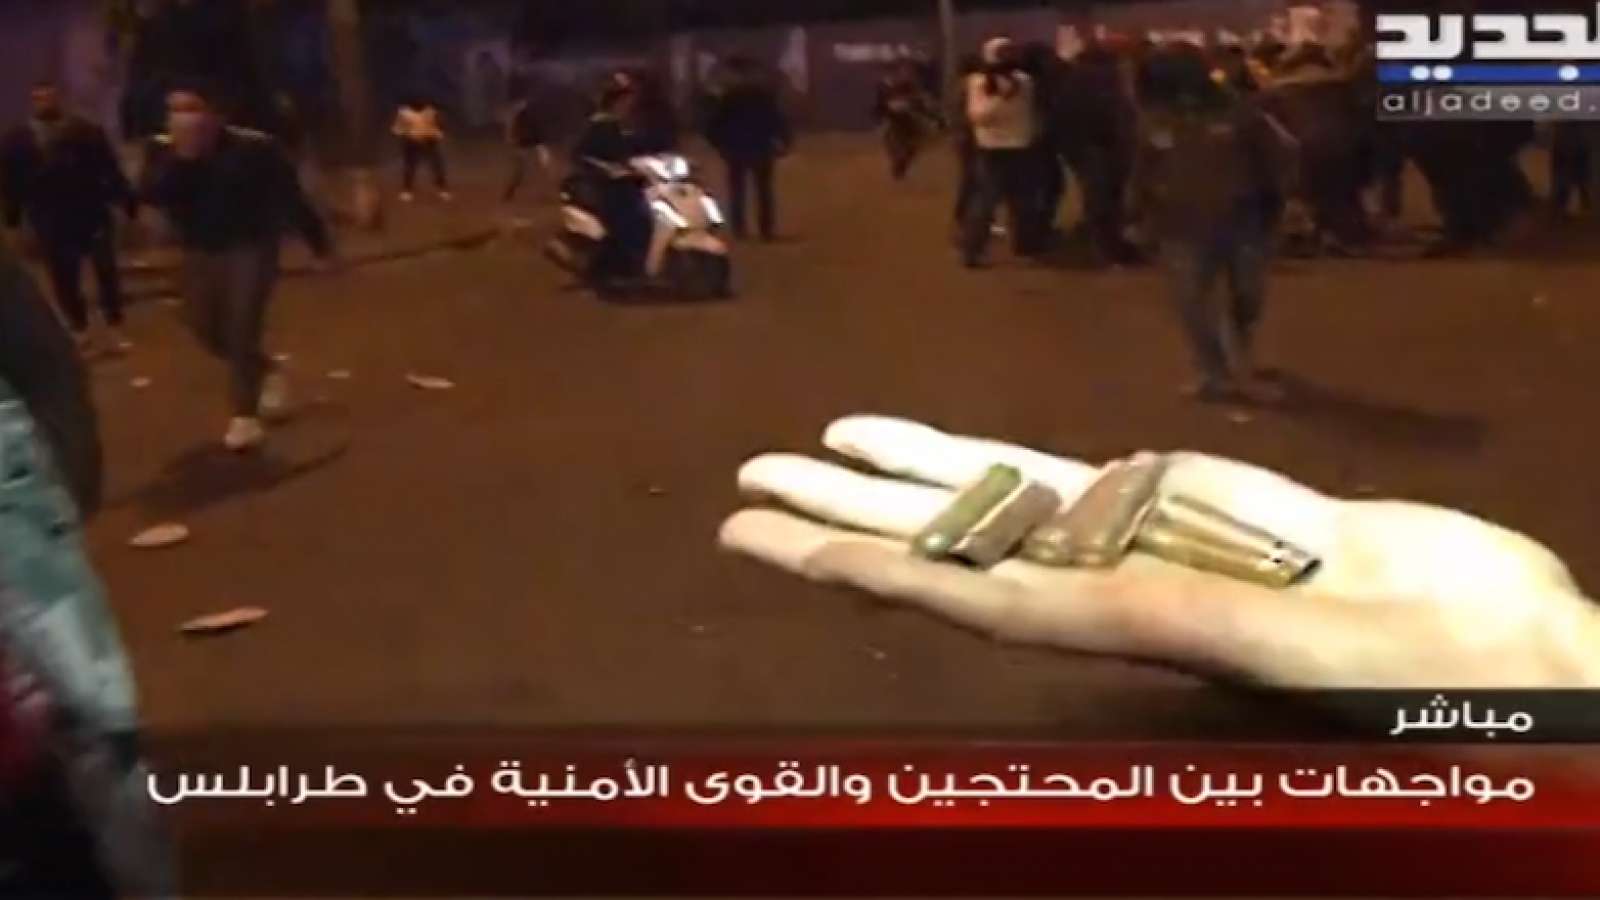 Screenshot of a handful of bullet cartridges shown on Al Jadeed TV's live broadcast moments after riot police fired and wounded protesters in Nour Square. Tripoli, Lebanon. January 27, 2021.